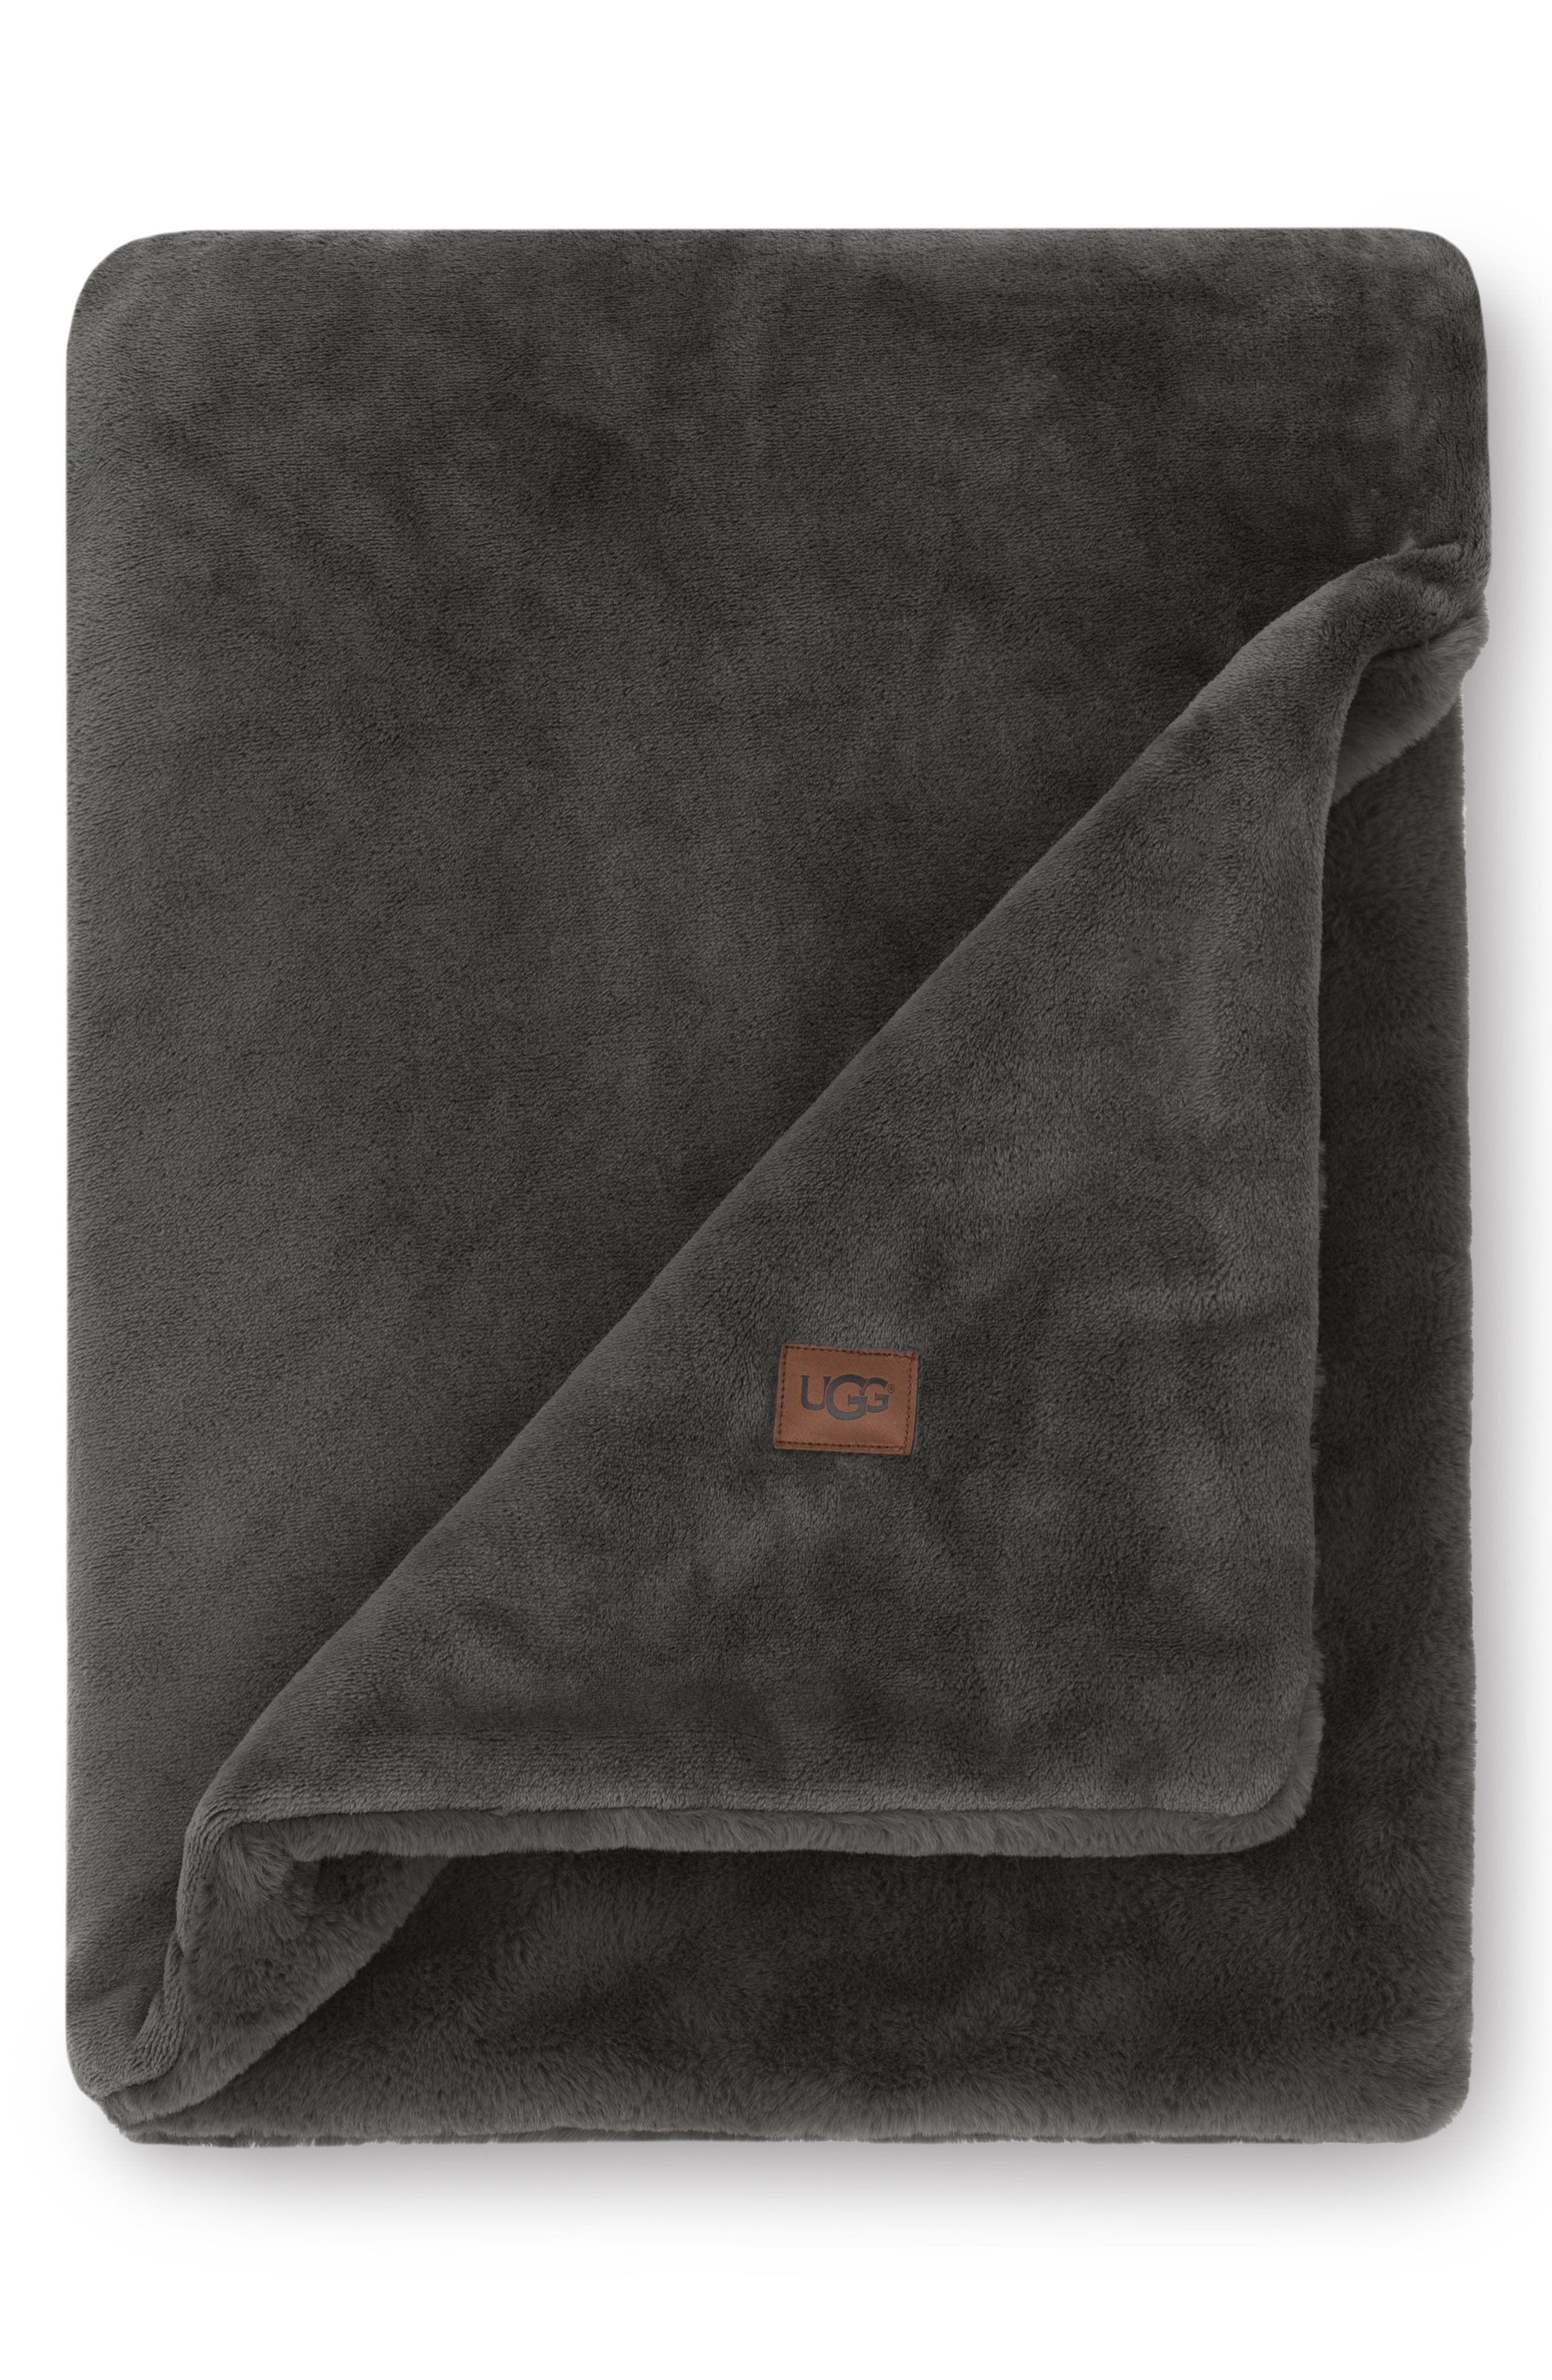 UGG<SUP>®</SUP> Coastline Plush Throw, Main, color, CHARCOAL